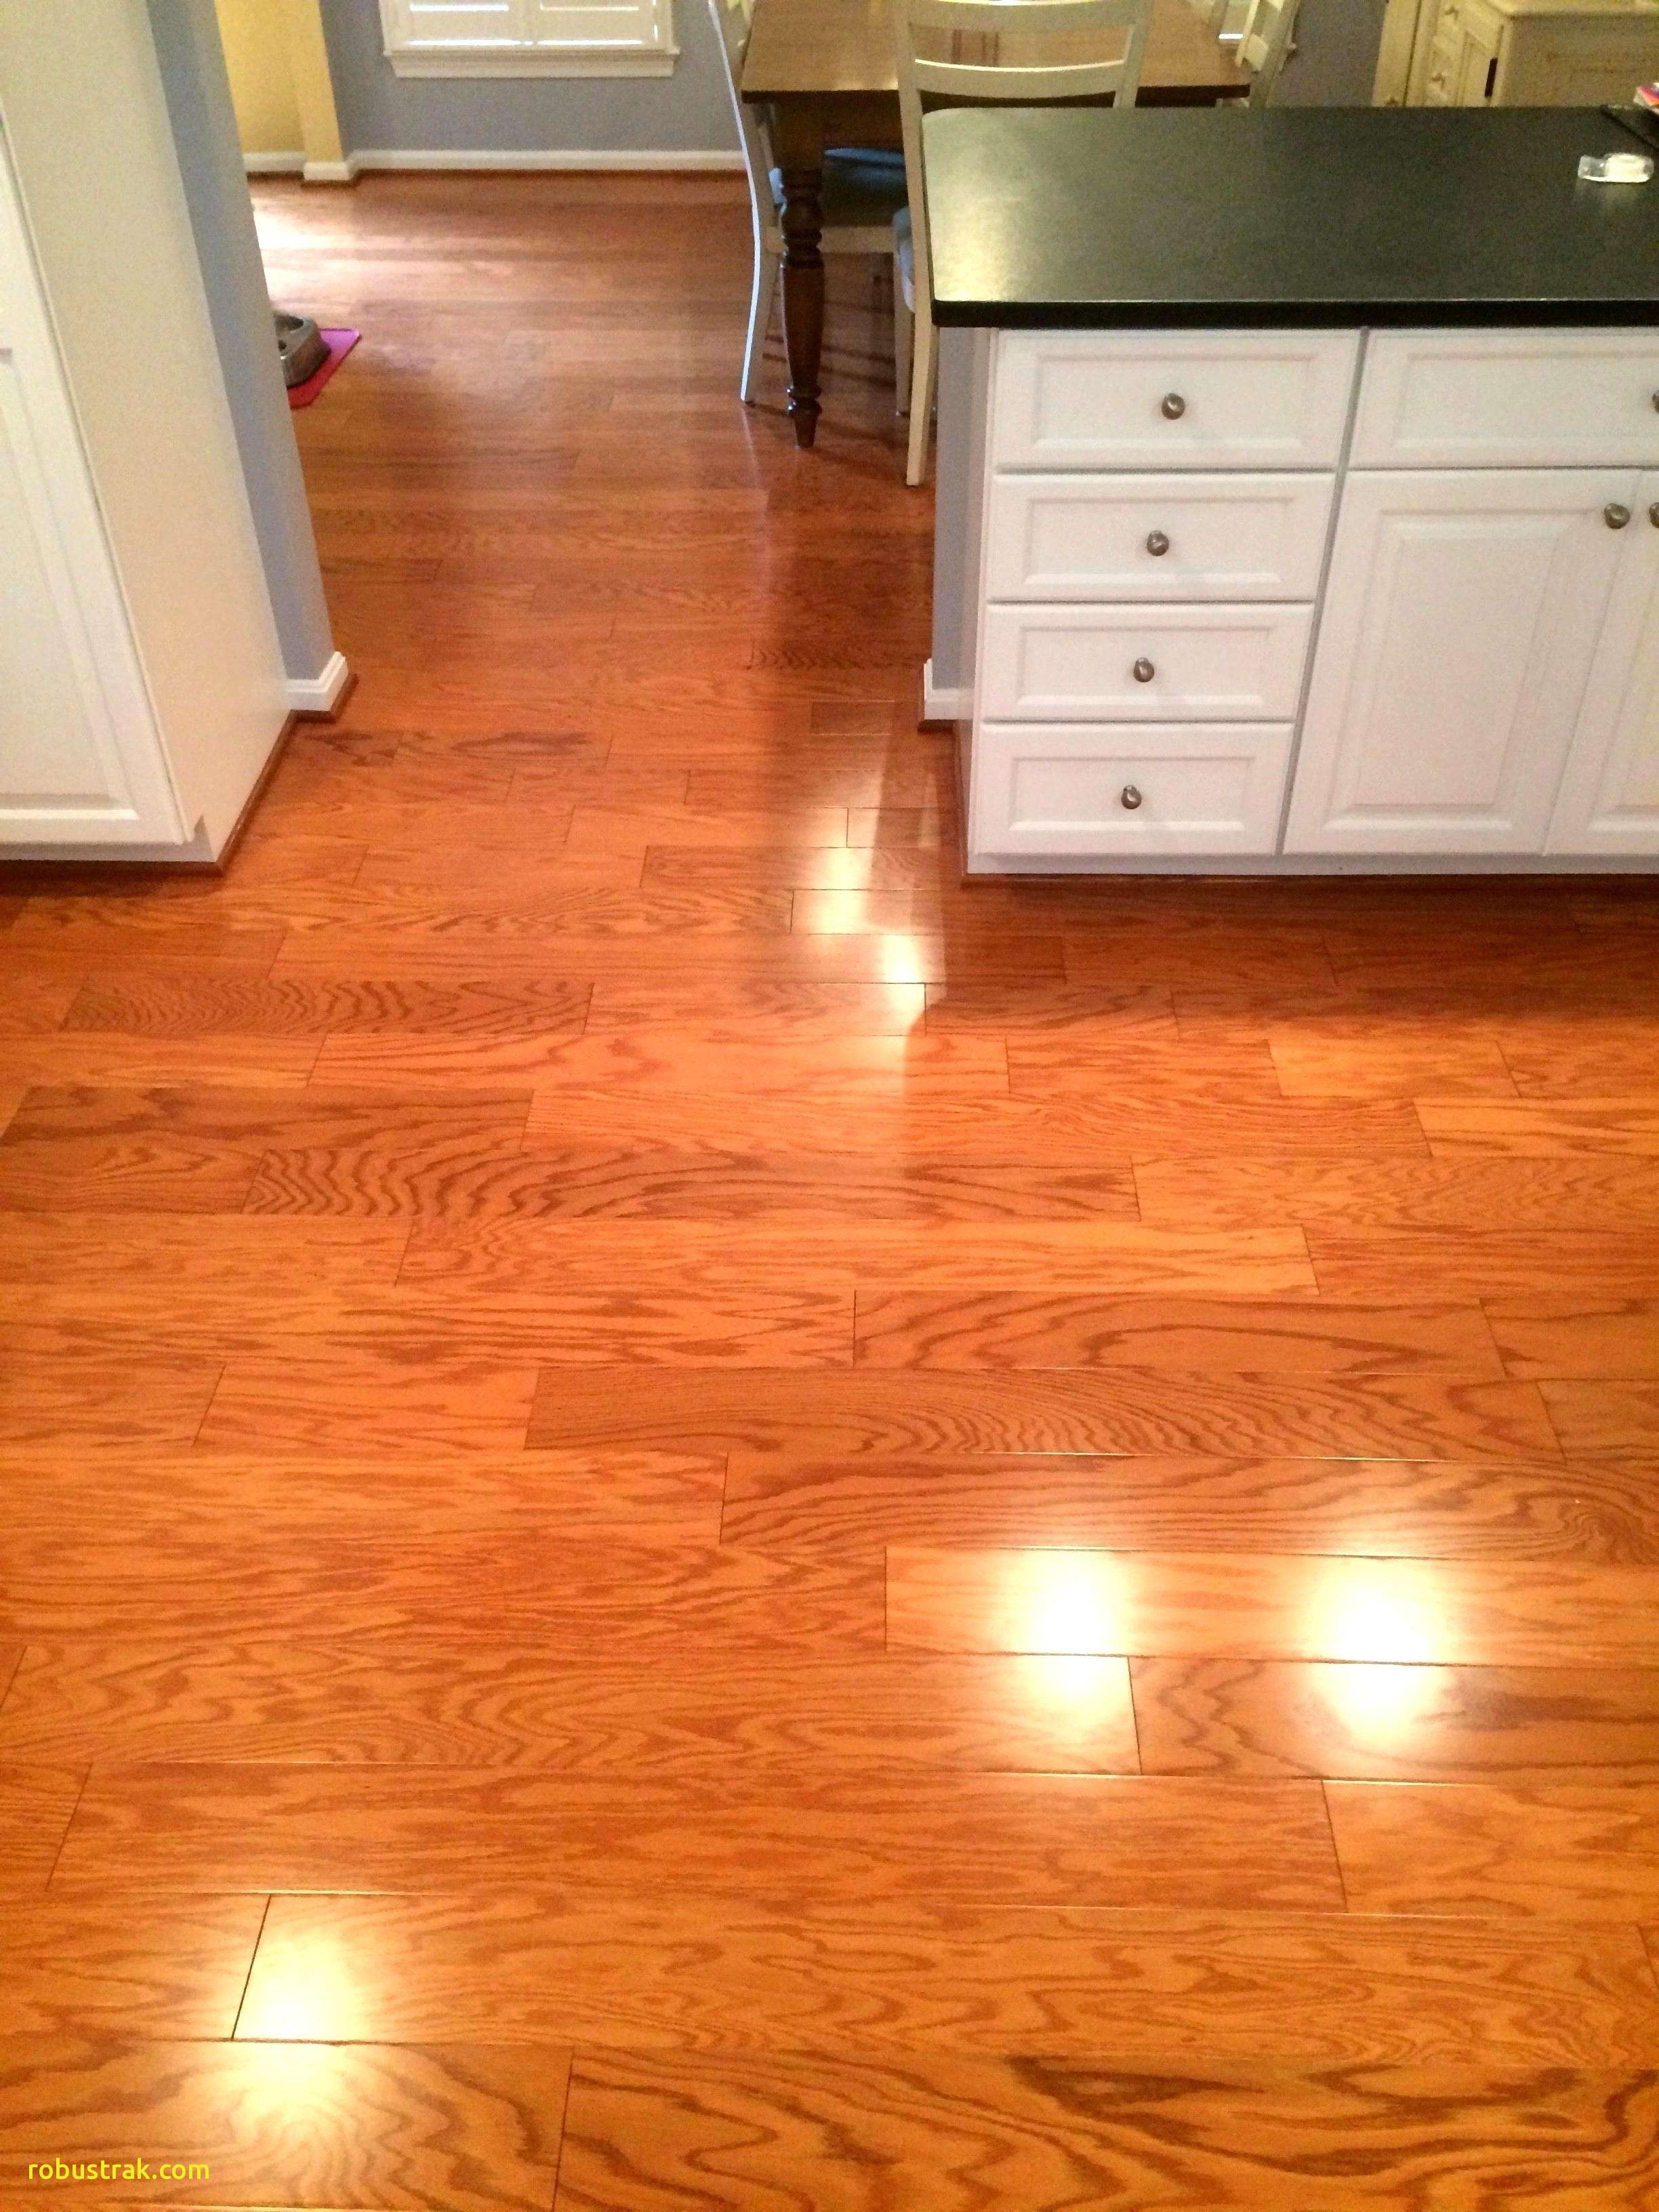 Hardwood Flooring Business Of Flooring Contractor Hardwood Floors In the Kitchen Fresh where to Pertaining to Flooring Contractor Hardwood Floors In the Kitchen Fresh where to Buy Hardwood Flooring